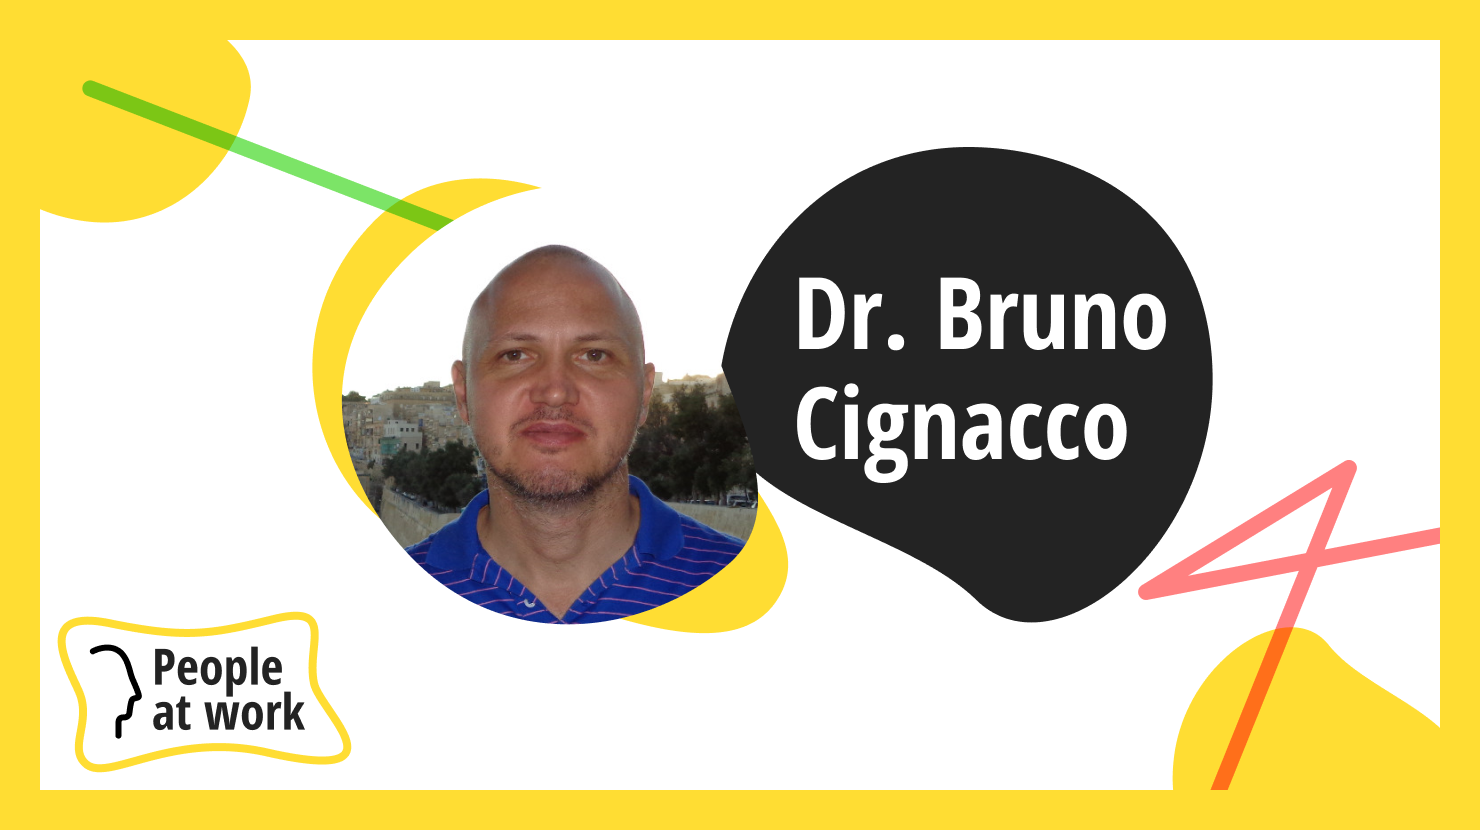 Love should be part of business says Dr. Bruno Cignacco